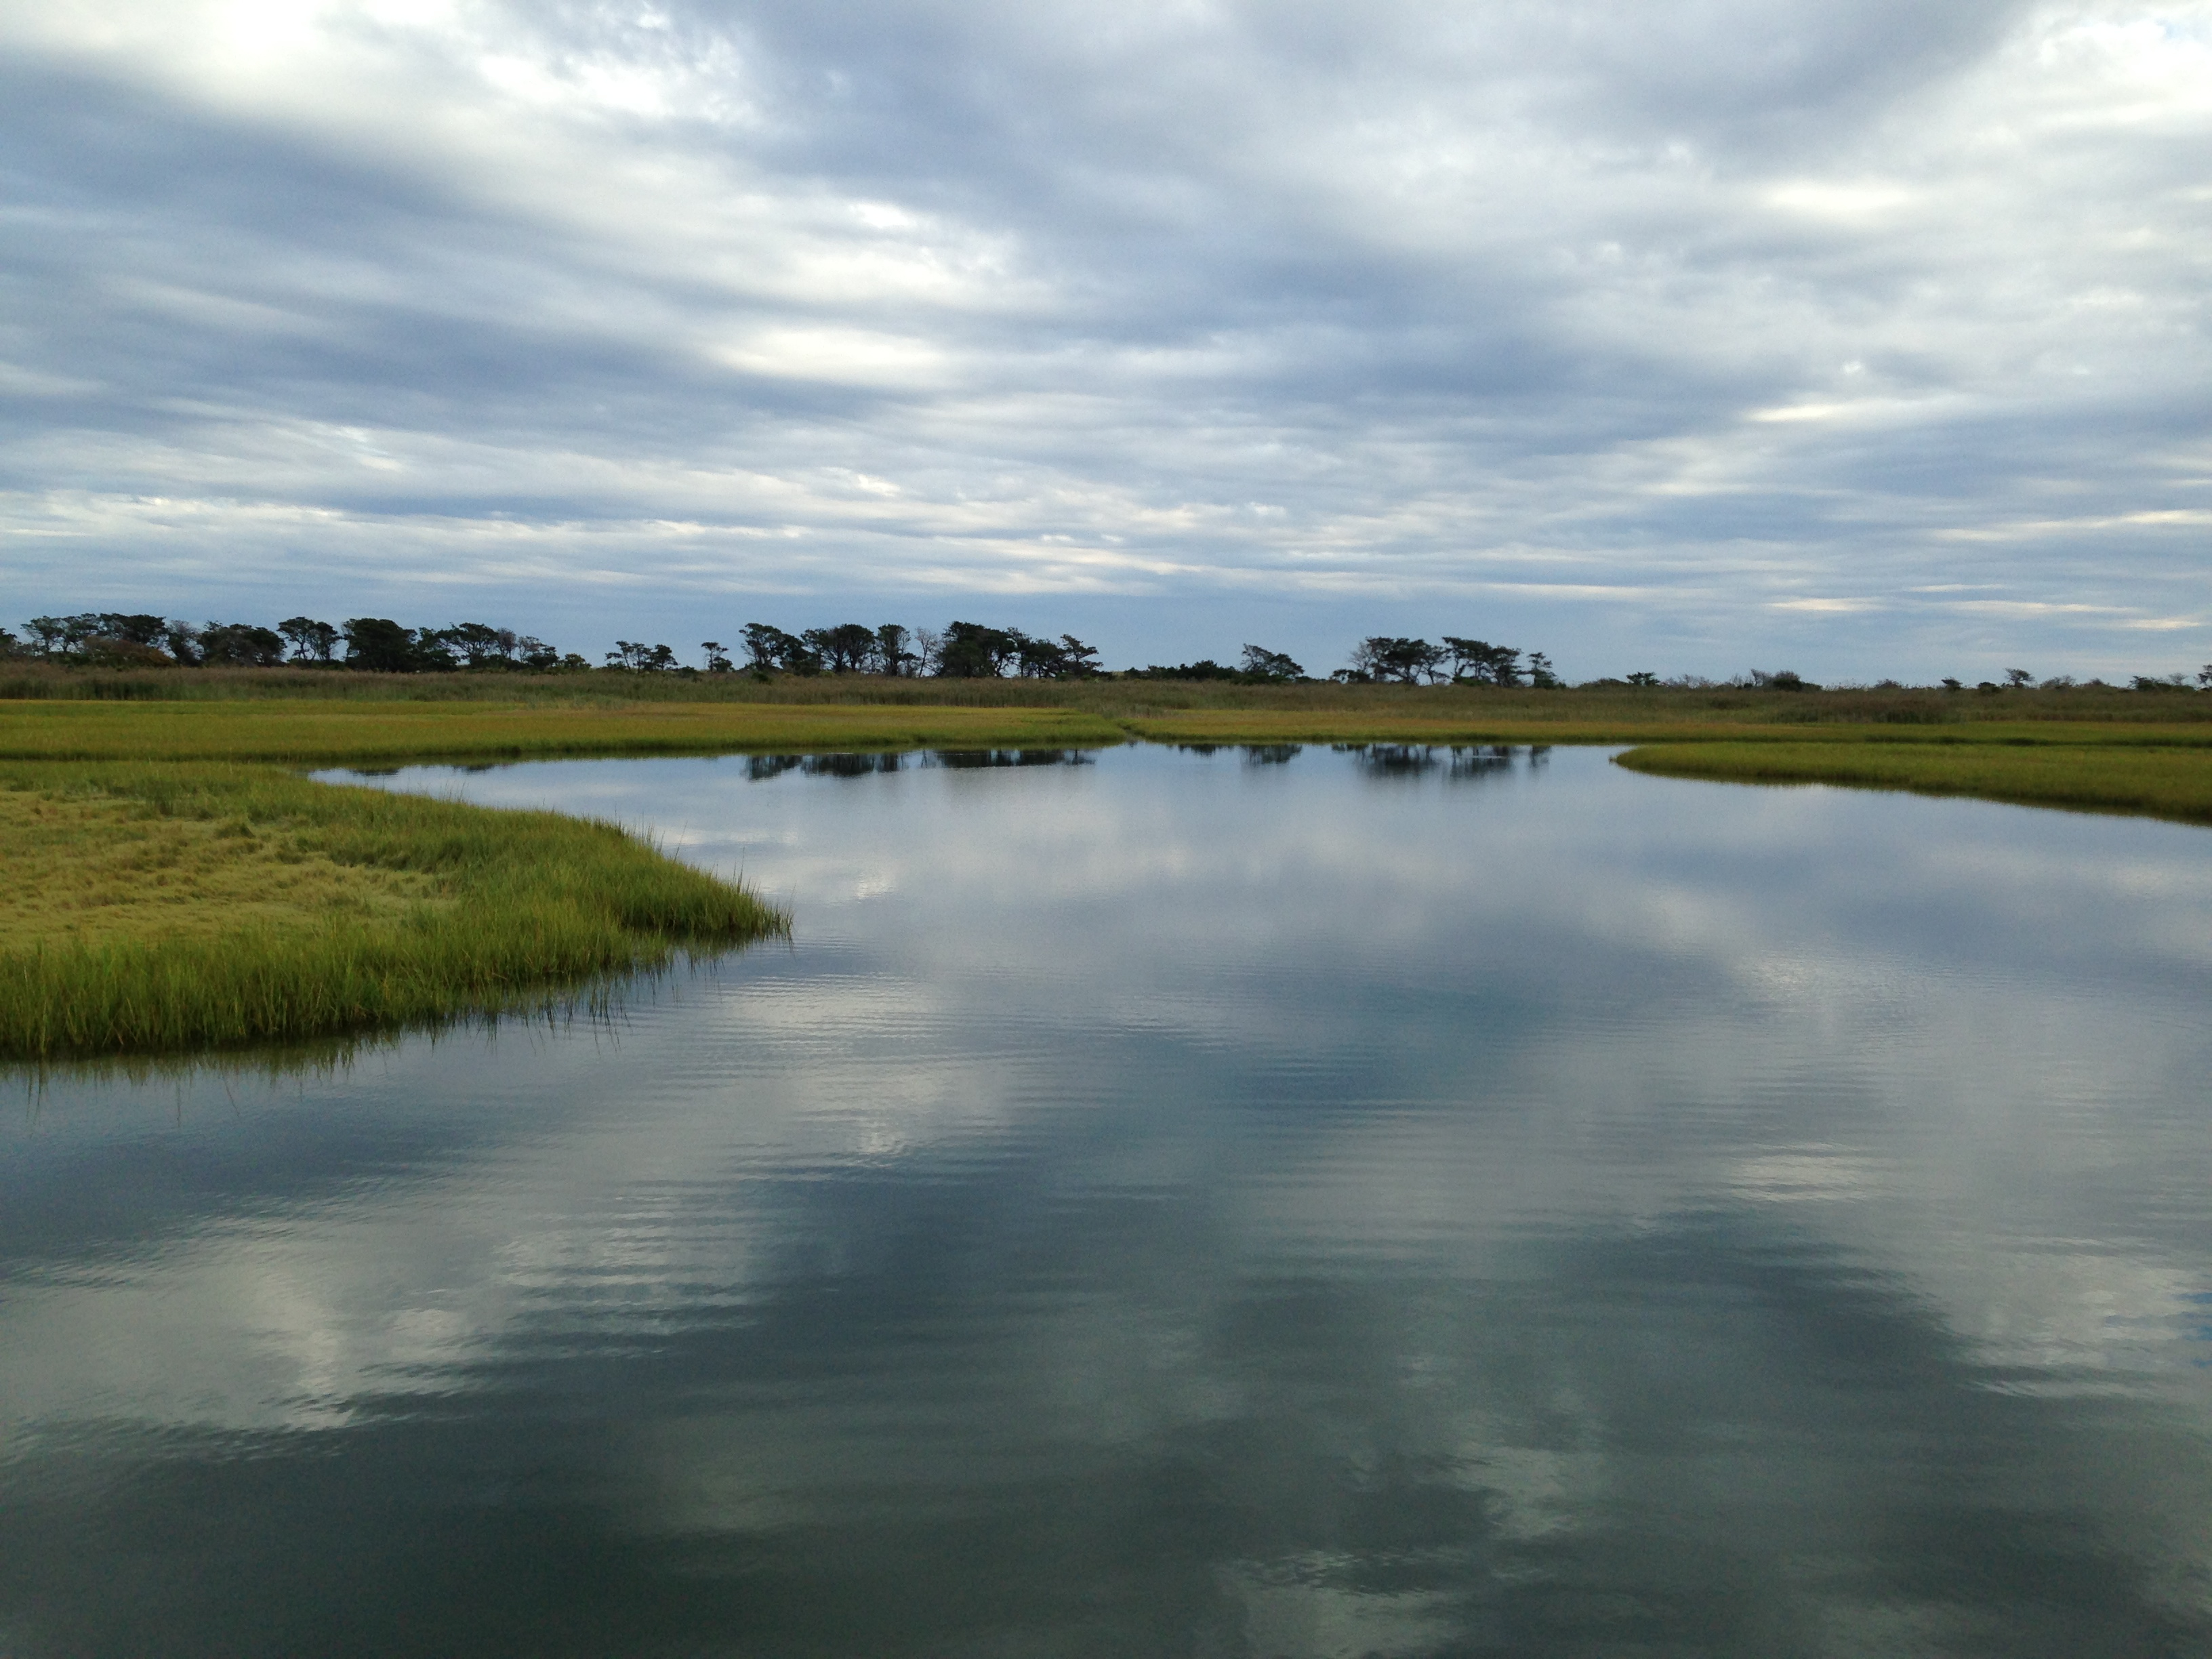 To help coastal National Parks better prepare for storms and sea level rise, Dr. John King, a University of Rhode Island Graduate School of Oceanography professor, is leading research to map thousands of acres of underwater habitats that have never before been surveyed.